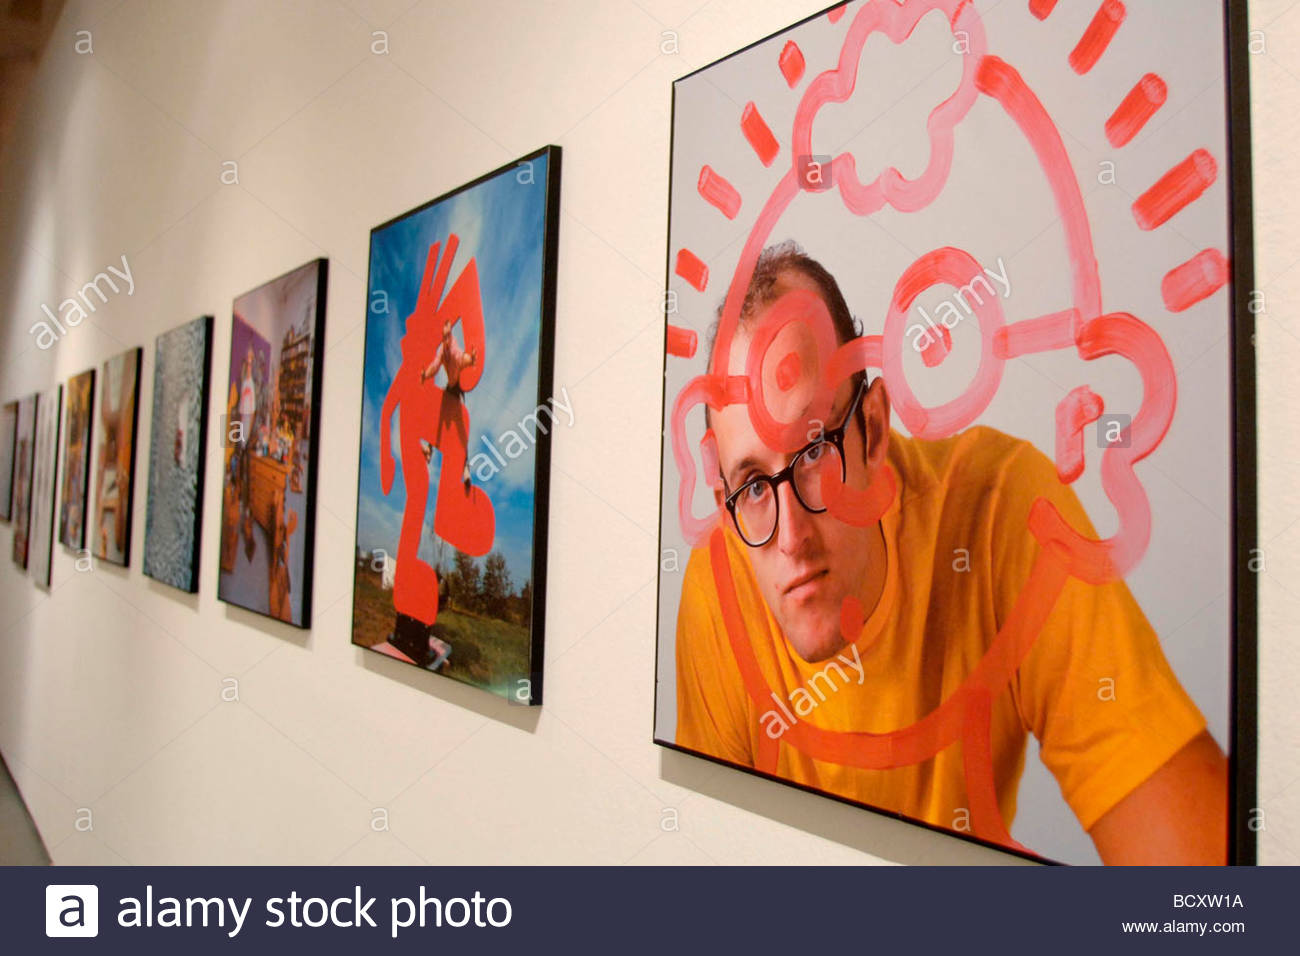 Keith haring stock photos keith haring stock images alamy keith haring art exhibition triennale di milano italy stock image reviewsmspy